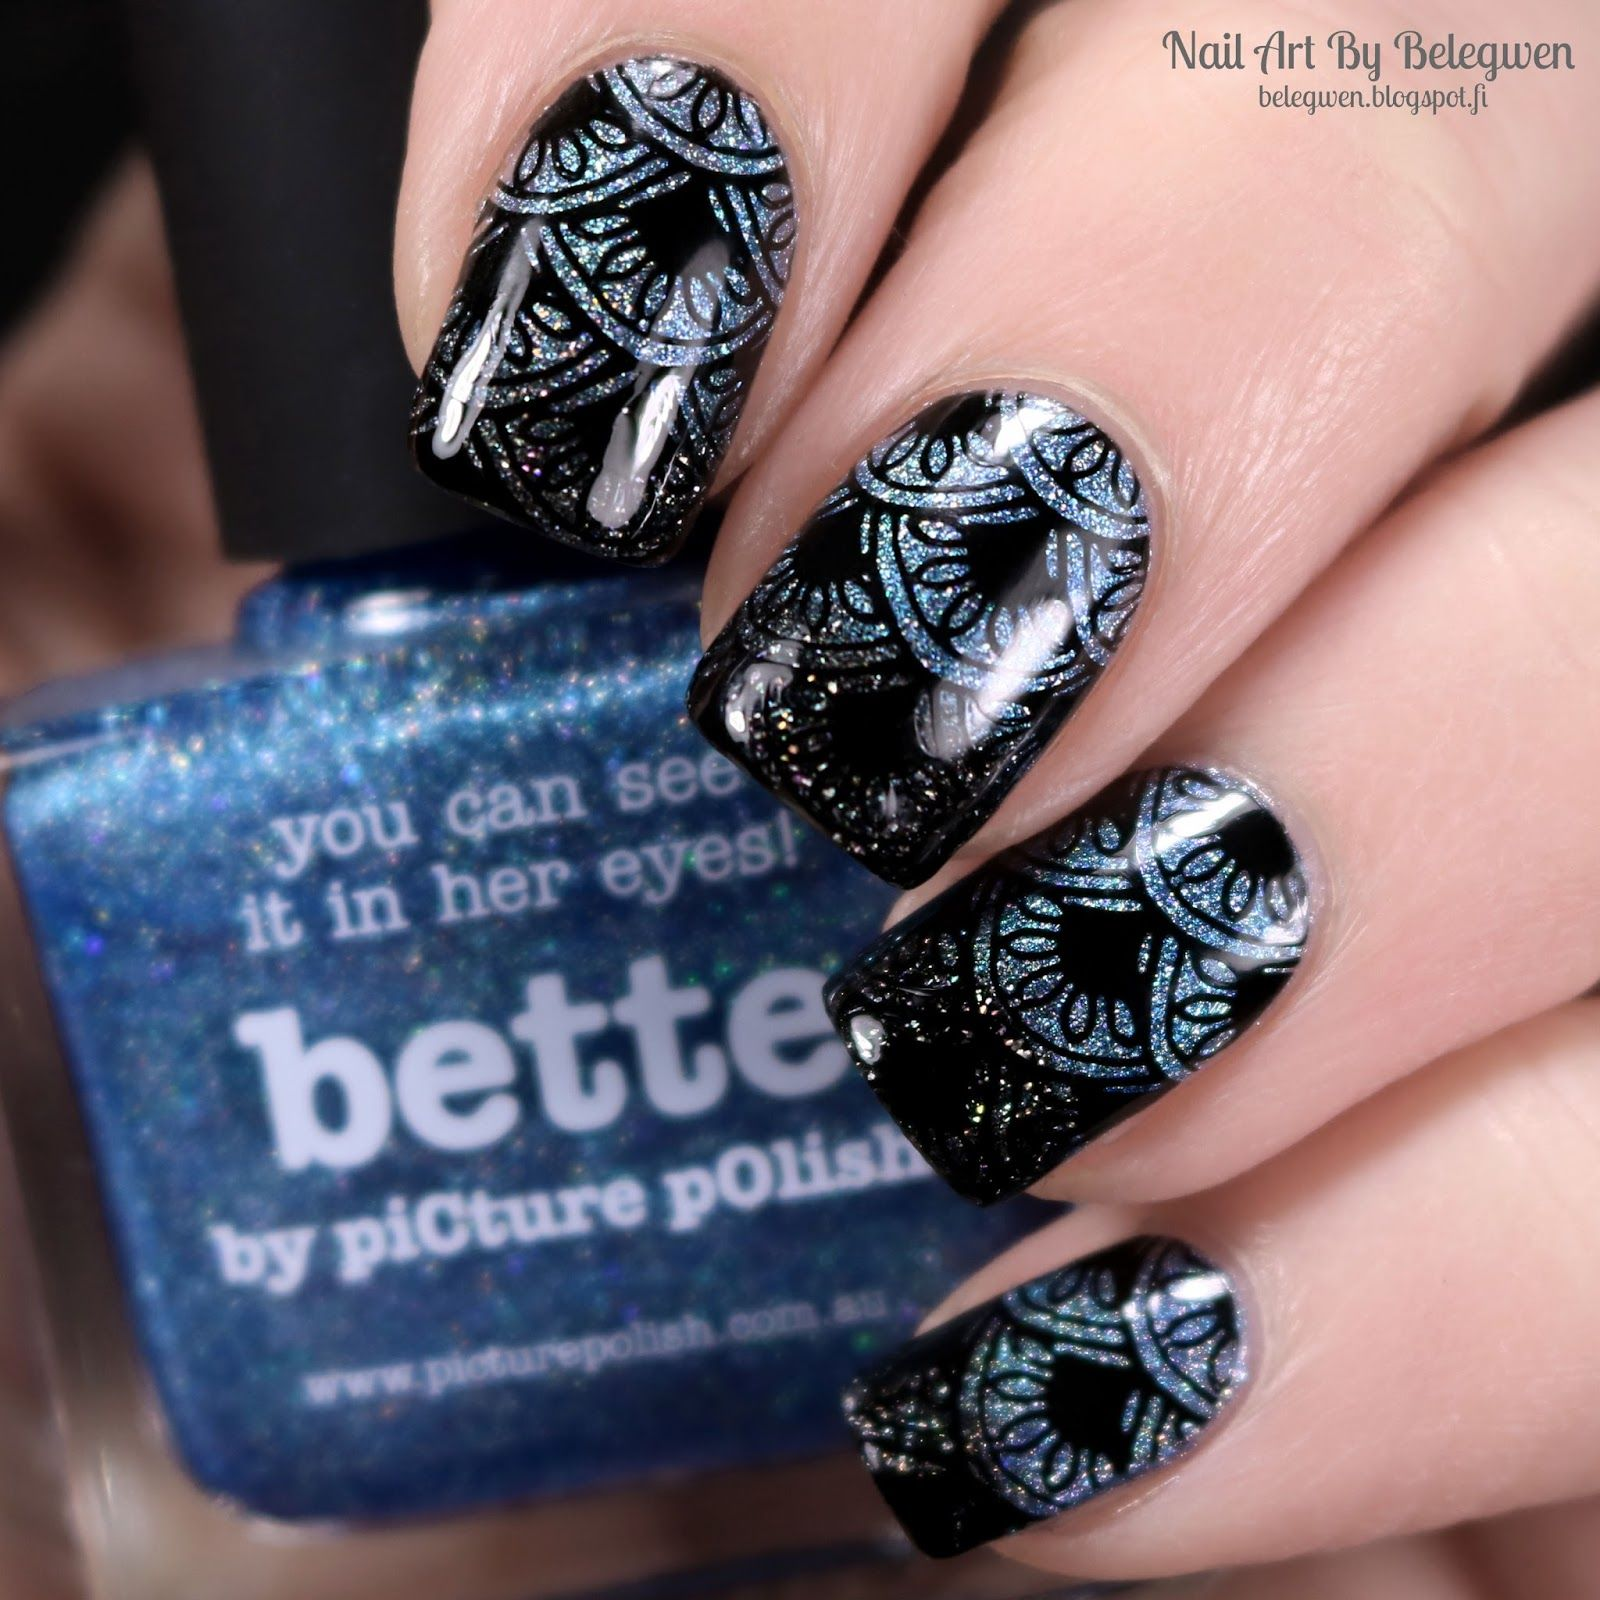 Nail Art By Belegwen: Picture Polish Bette and Dance Legend Gothic Veil with Black stamps